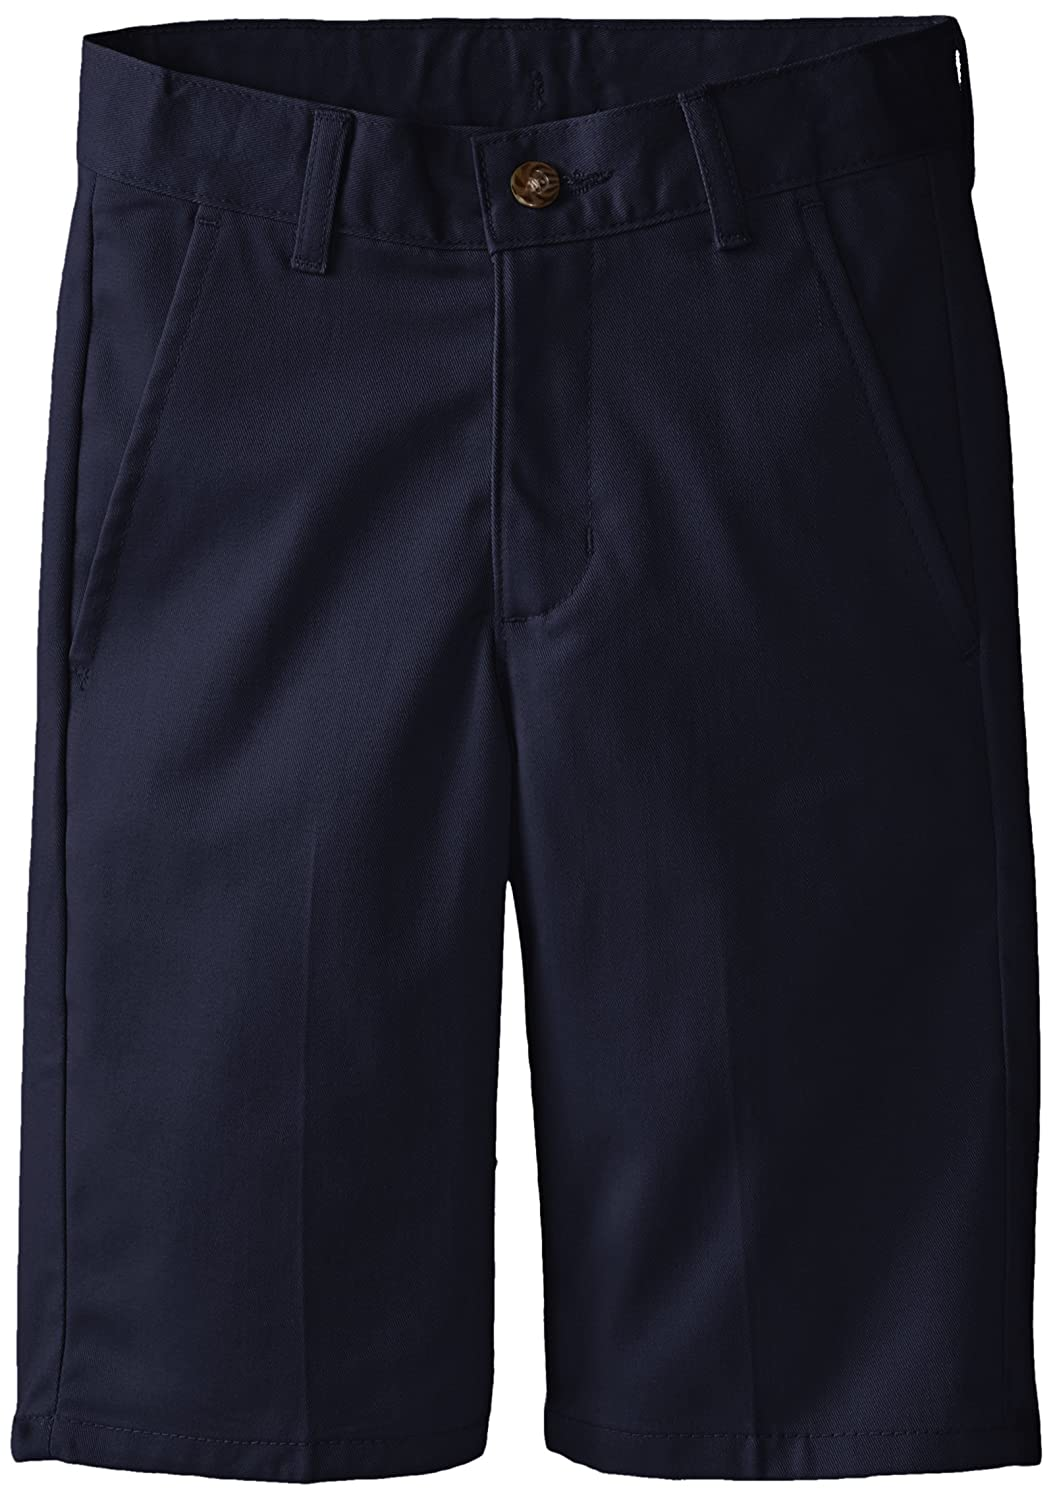 Izod Boys' Flat Front Uniform Short Izod Boys 8-20 Z861013P